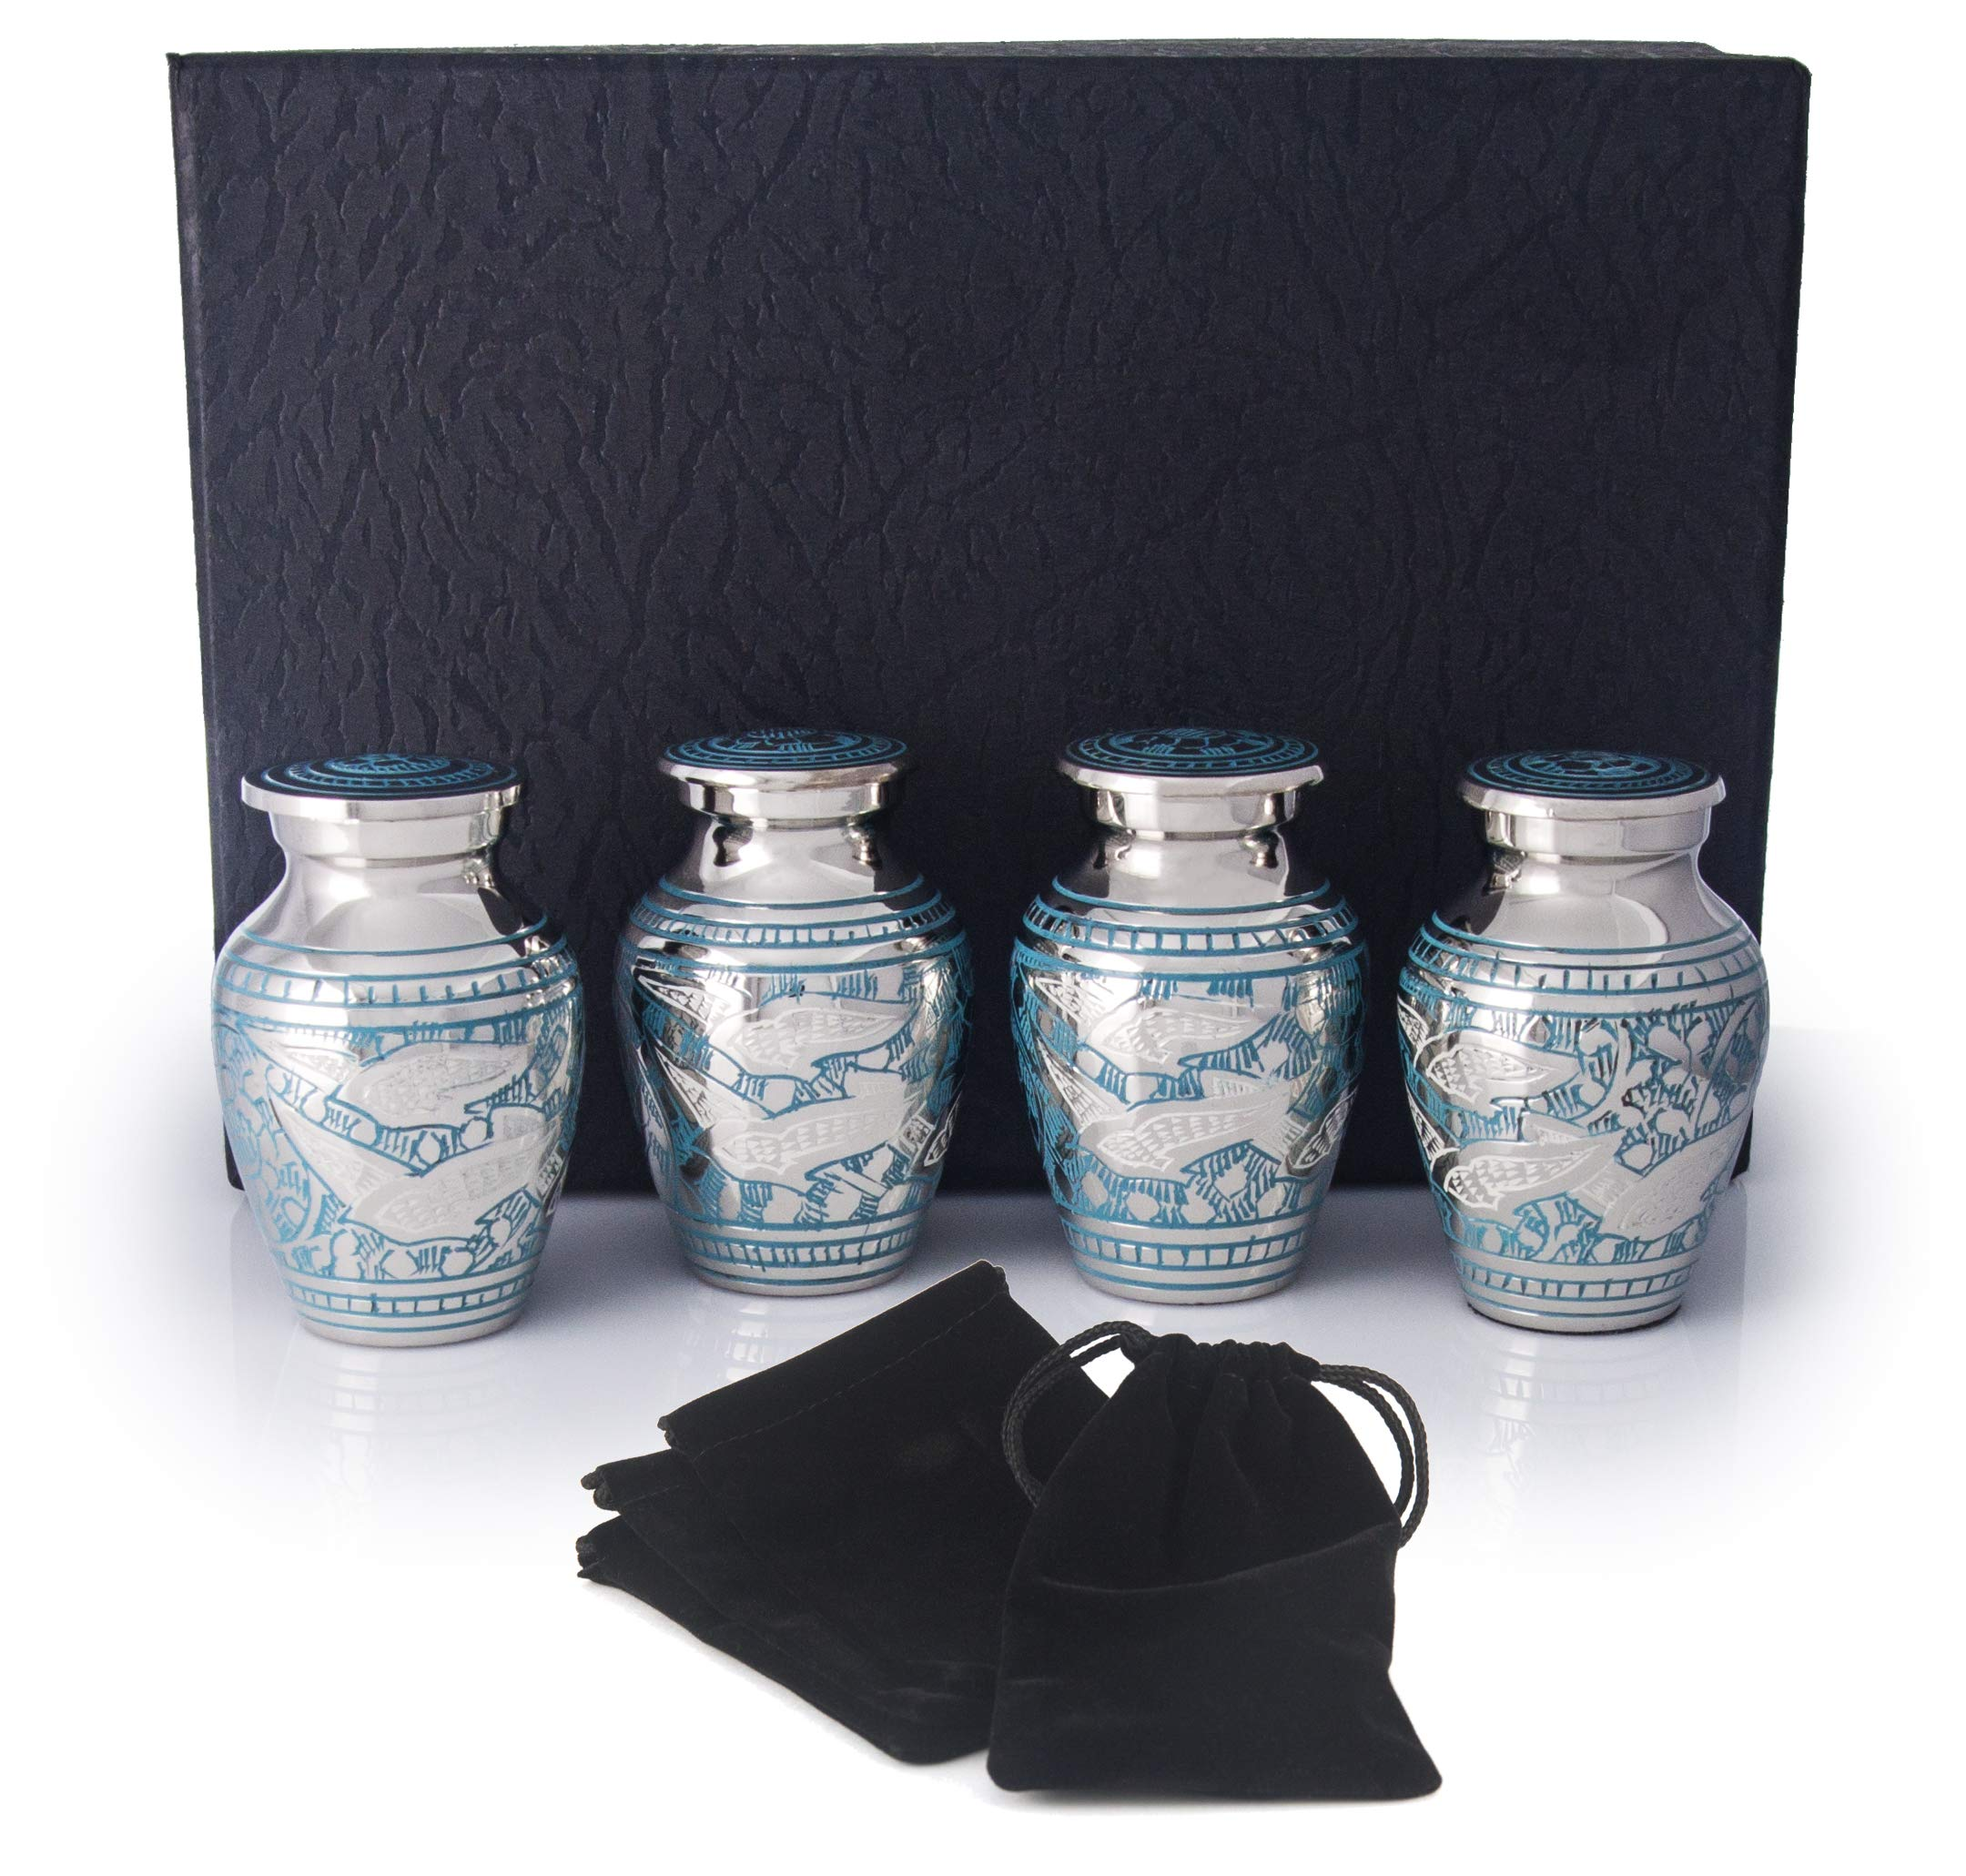 Small Cremation Urns for Human Ashes by Adera Dreams - White Wings Keepsake Urn Set of 4 - with Premium Case and Velvet Carrying Pouches - Miniature Memorial Funeral Urns for Sharing Ashes